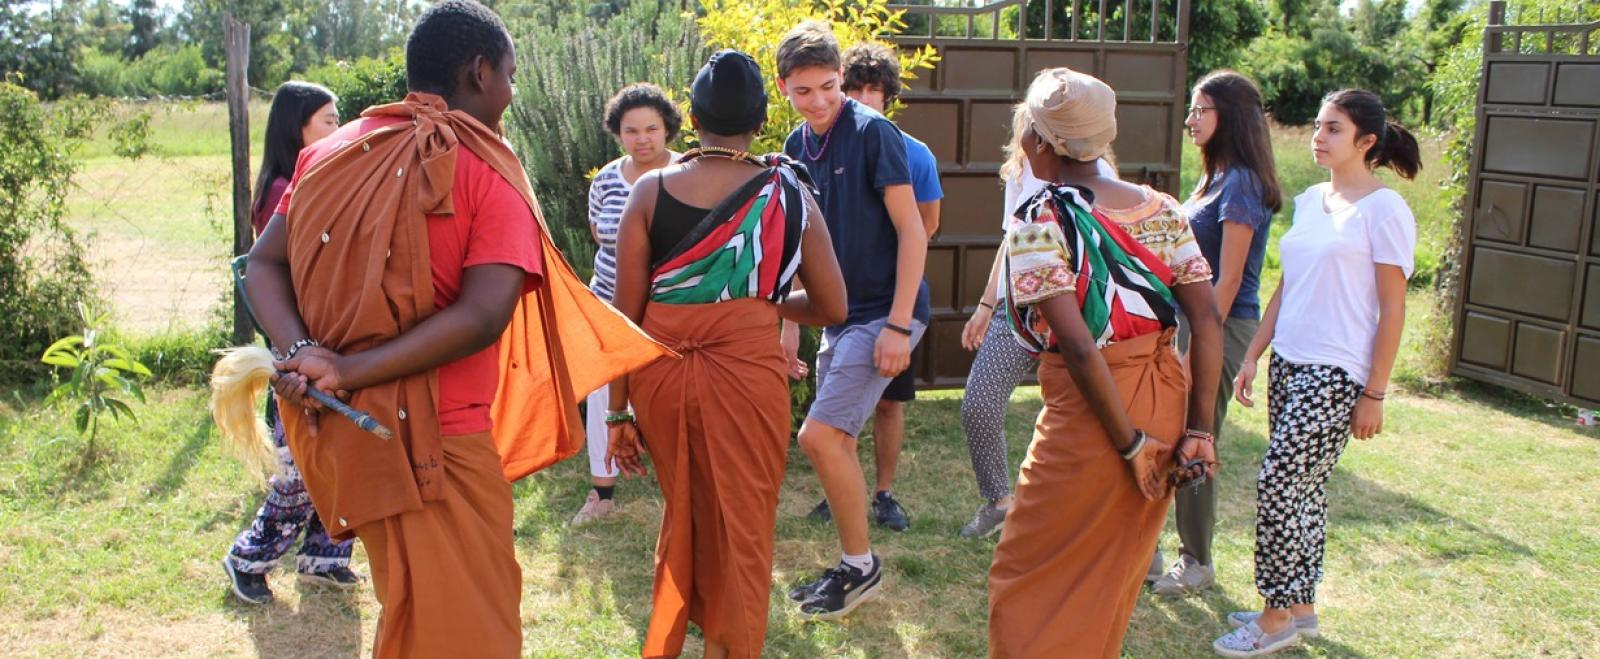 High school students volunteering in Kenya learn some local dance moves